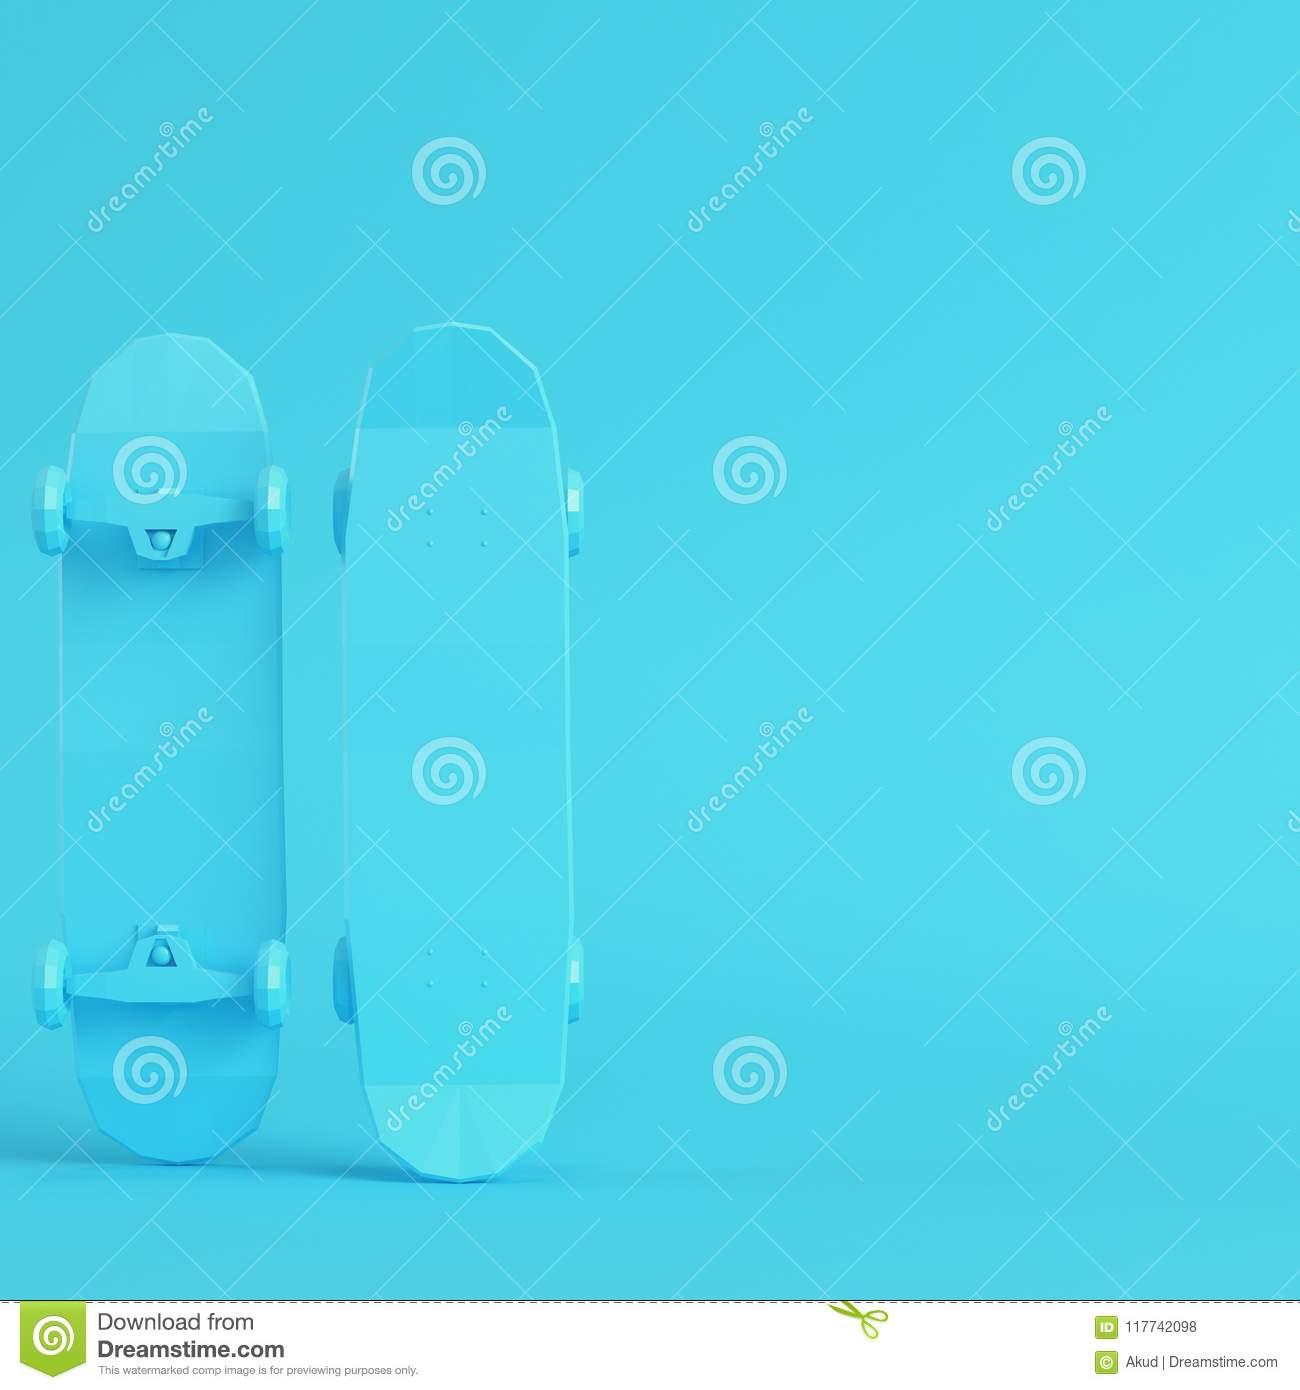 90054c47 Low poly skateboard deck on bright blue background in pastel colors.  Minimalism concept. 3d render. More similar stock illustrations